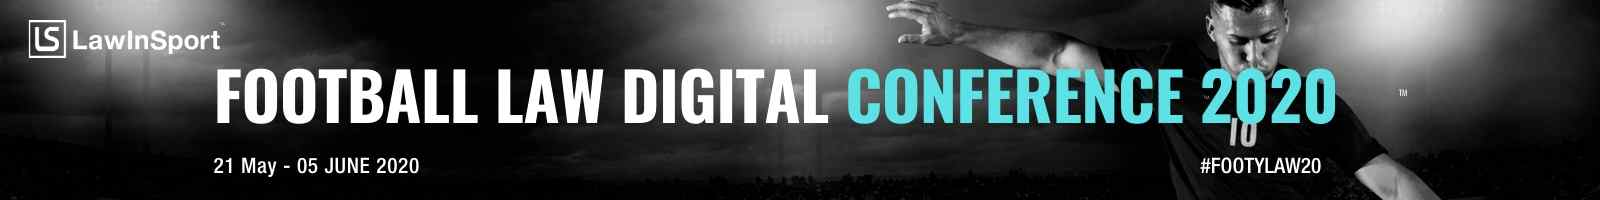 Football Law Digital Conference 2020